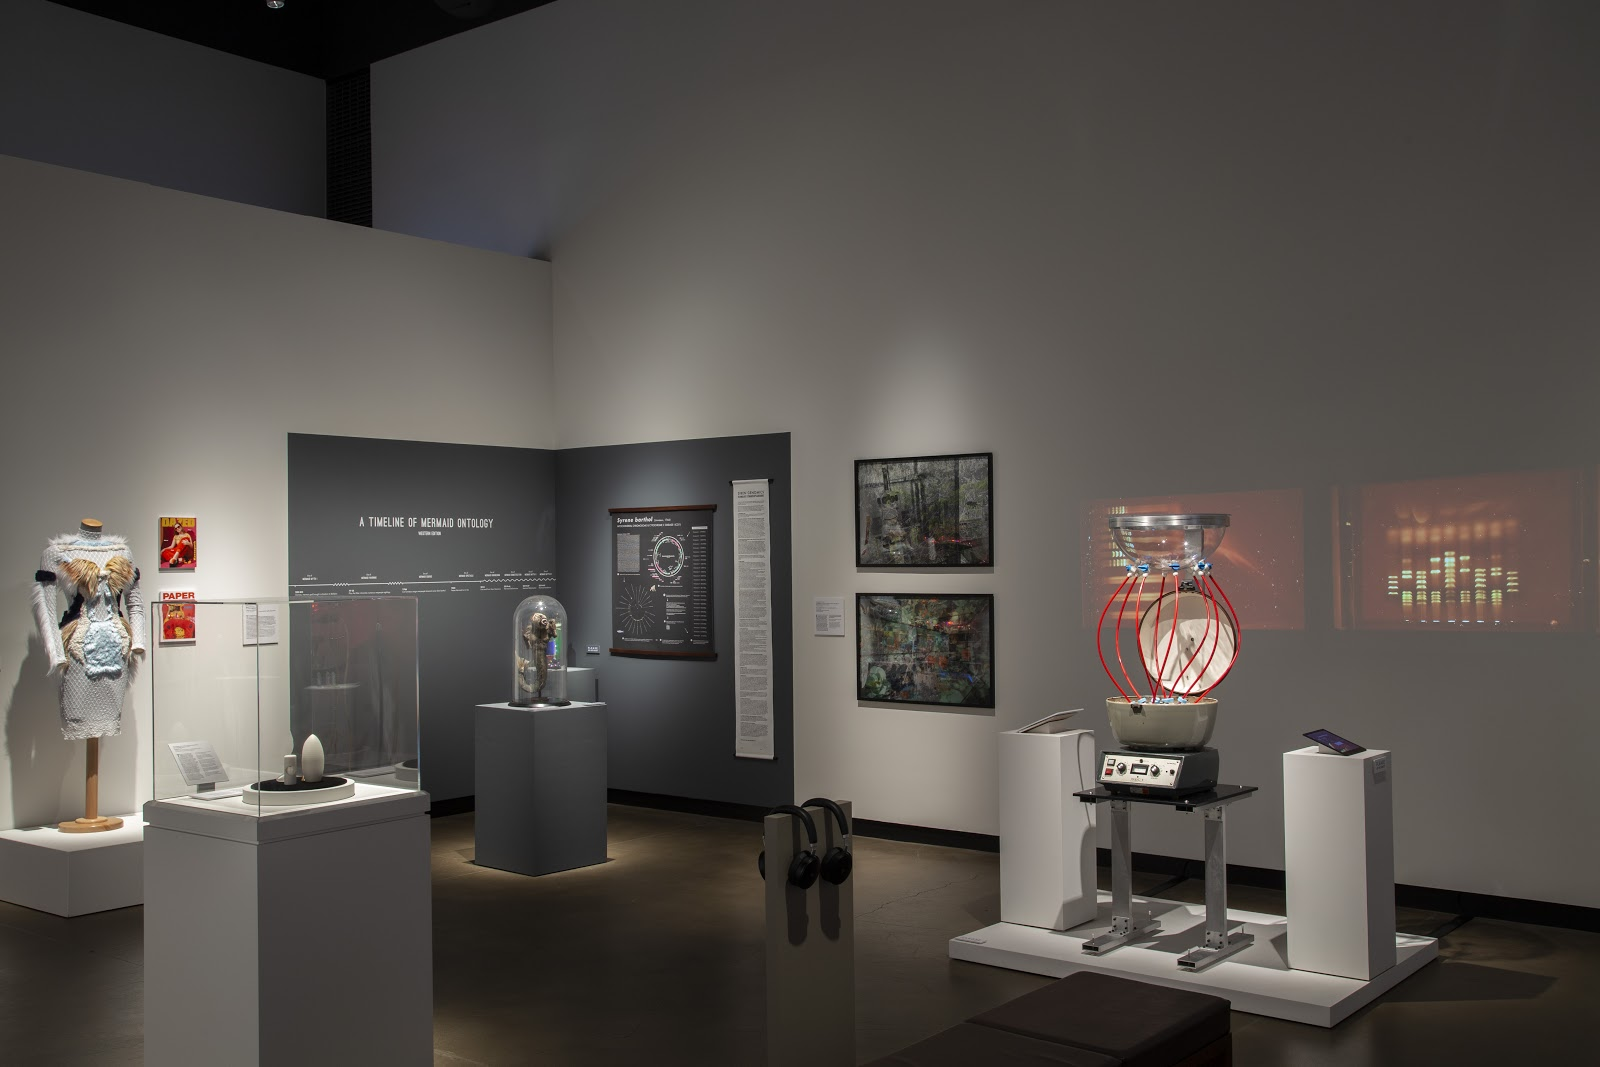 Art's Work in the Age of Biotechnology at the Gregg Museum of Art & Design in Raleigh, NC. Installation image by Matthew Gay, courtesy of the Gregg Museum of Art & Design, 2019-2020.